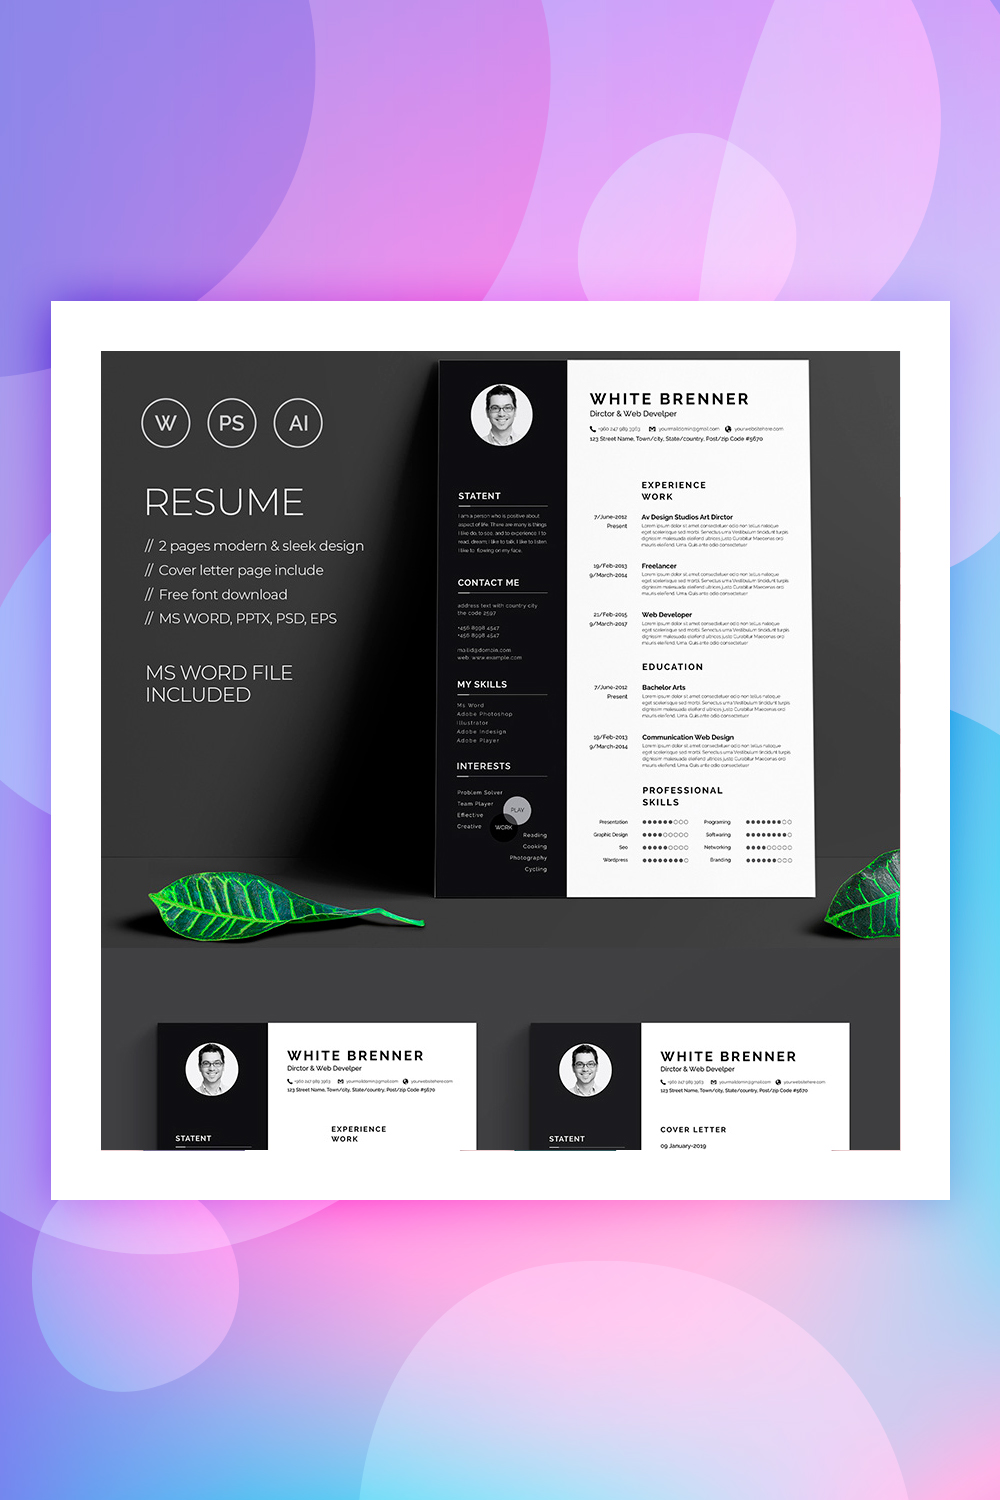 19 Best Resume Templates For Your Professional Resume - Colorlib